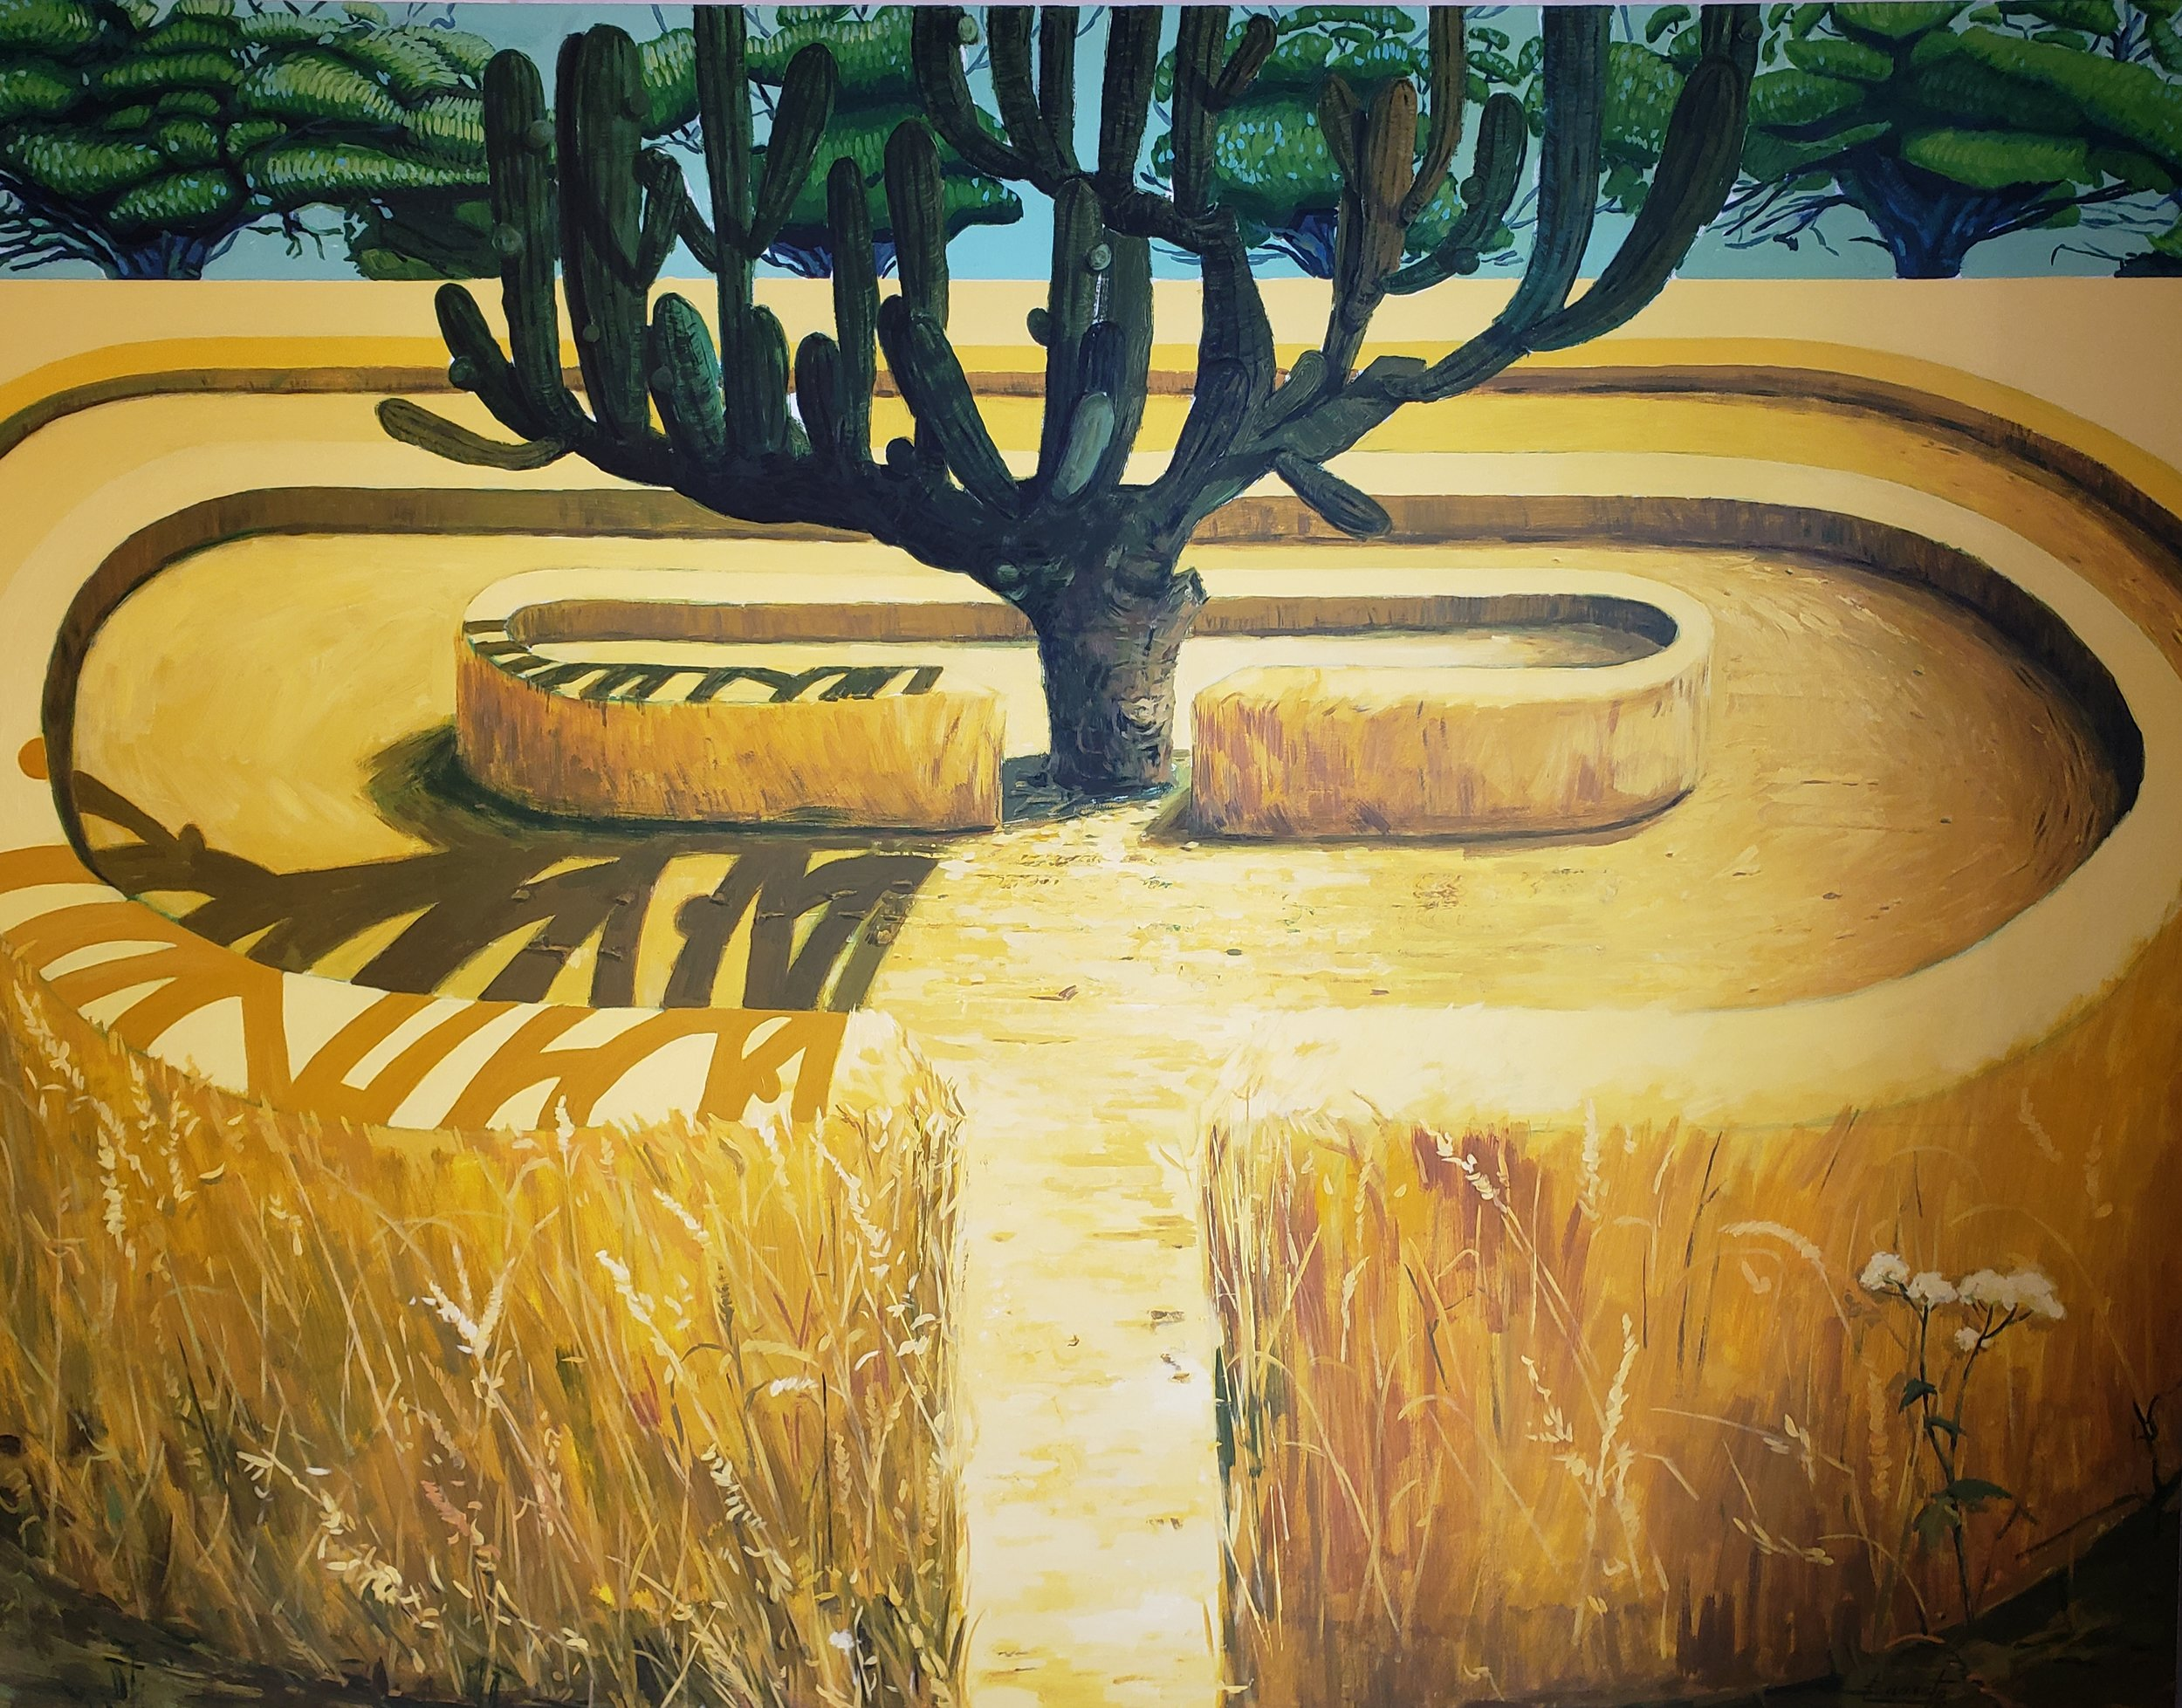 Landscape with cactus, 2019